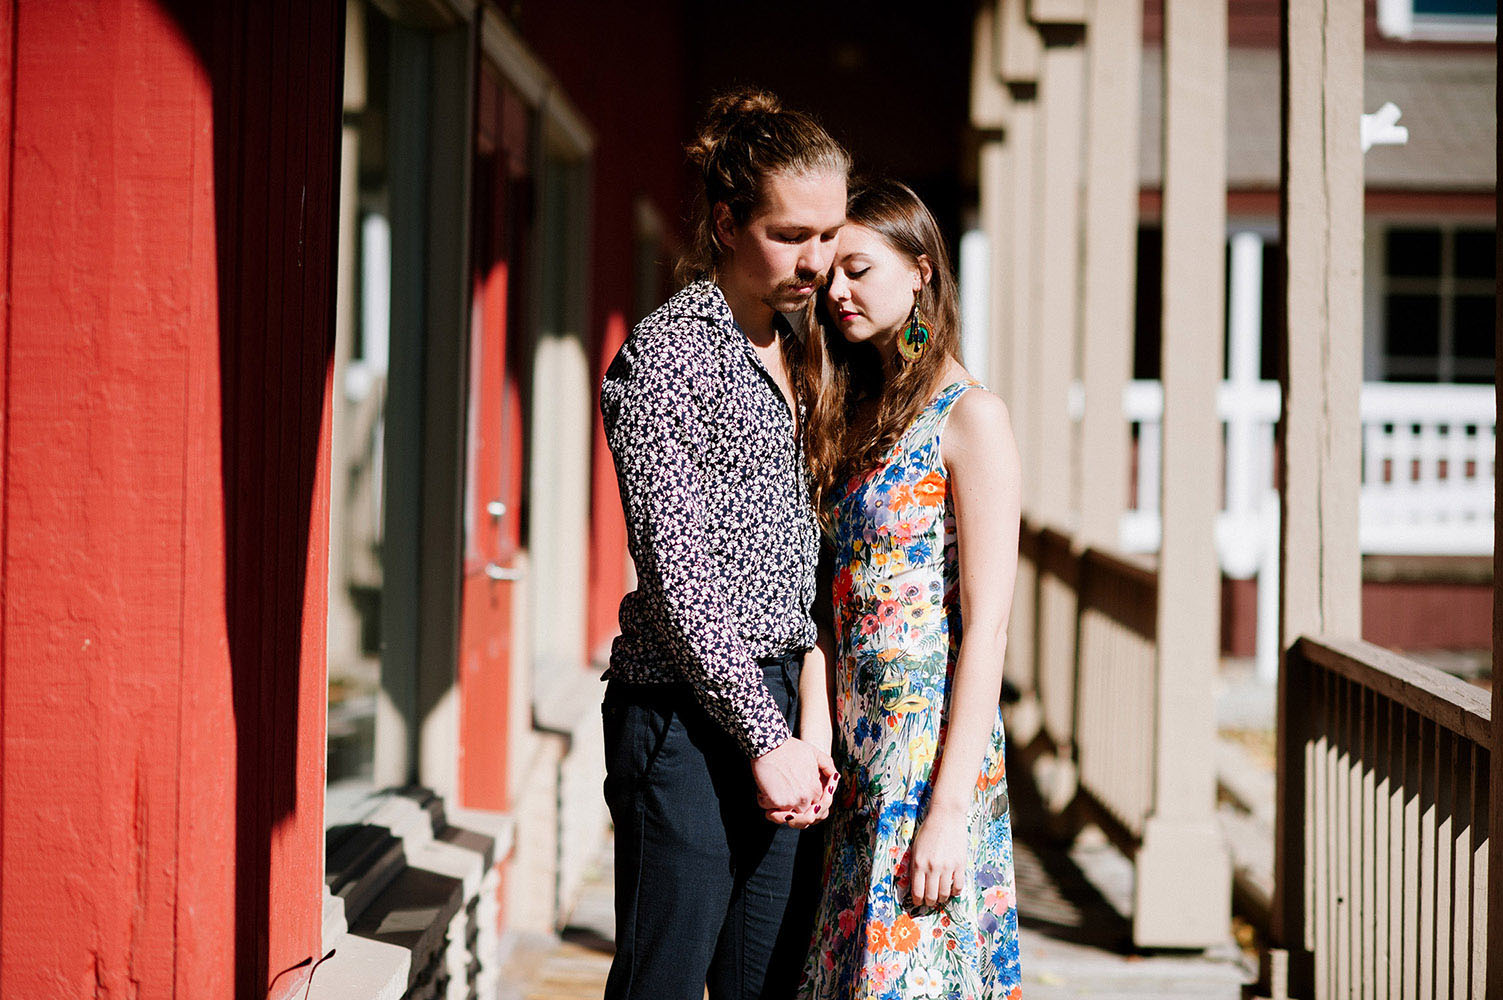 white male with facial hair and man bun with blue print shirt and female with long brown hair, peacock feahter earrings and floral print dress embracing